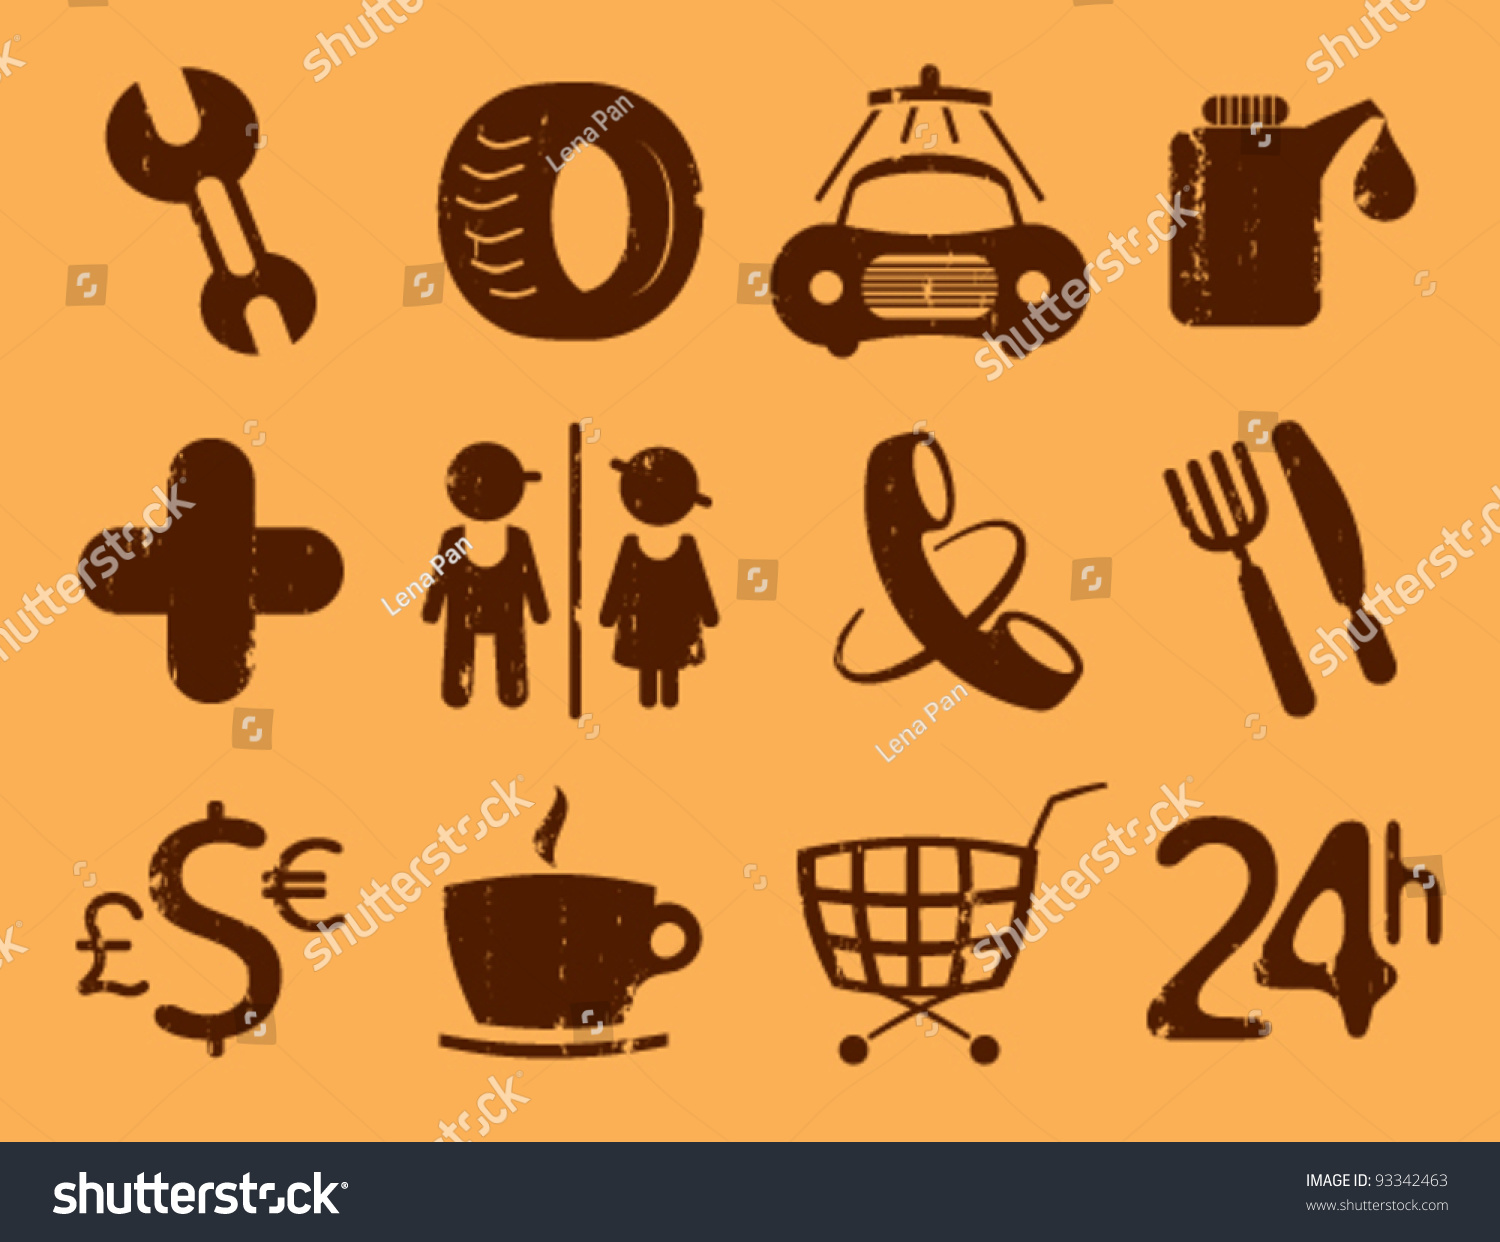 Map Gps And Waypoint Icons Vintage Style Stock Vector Illustration 93342463 Shutterstock